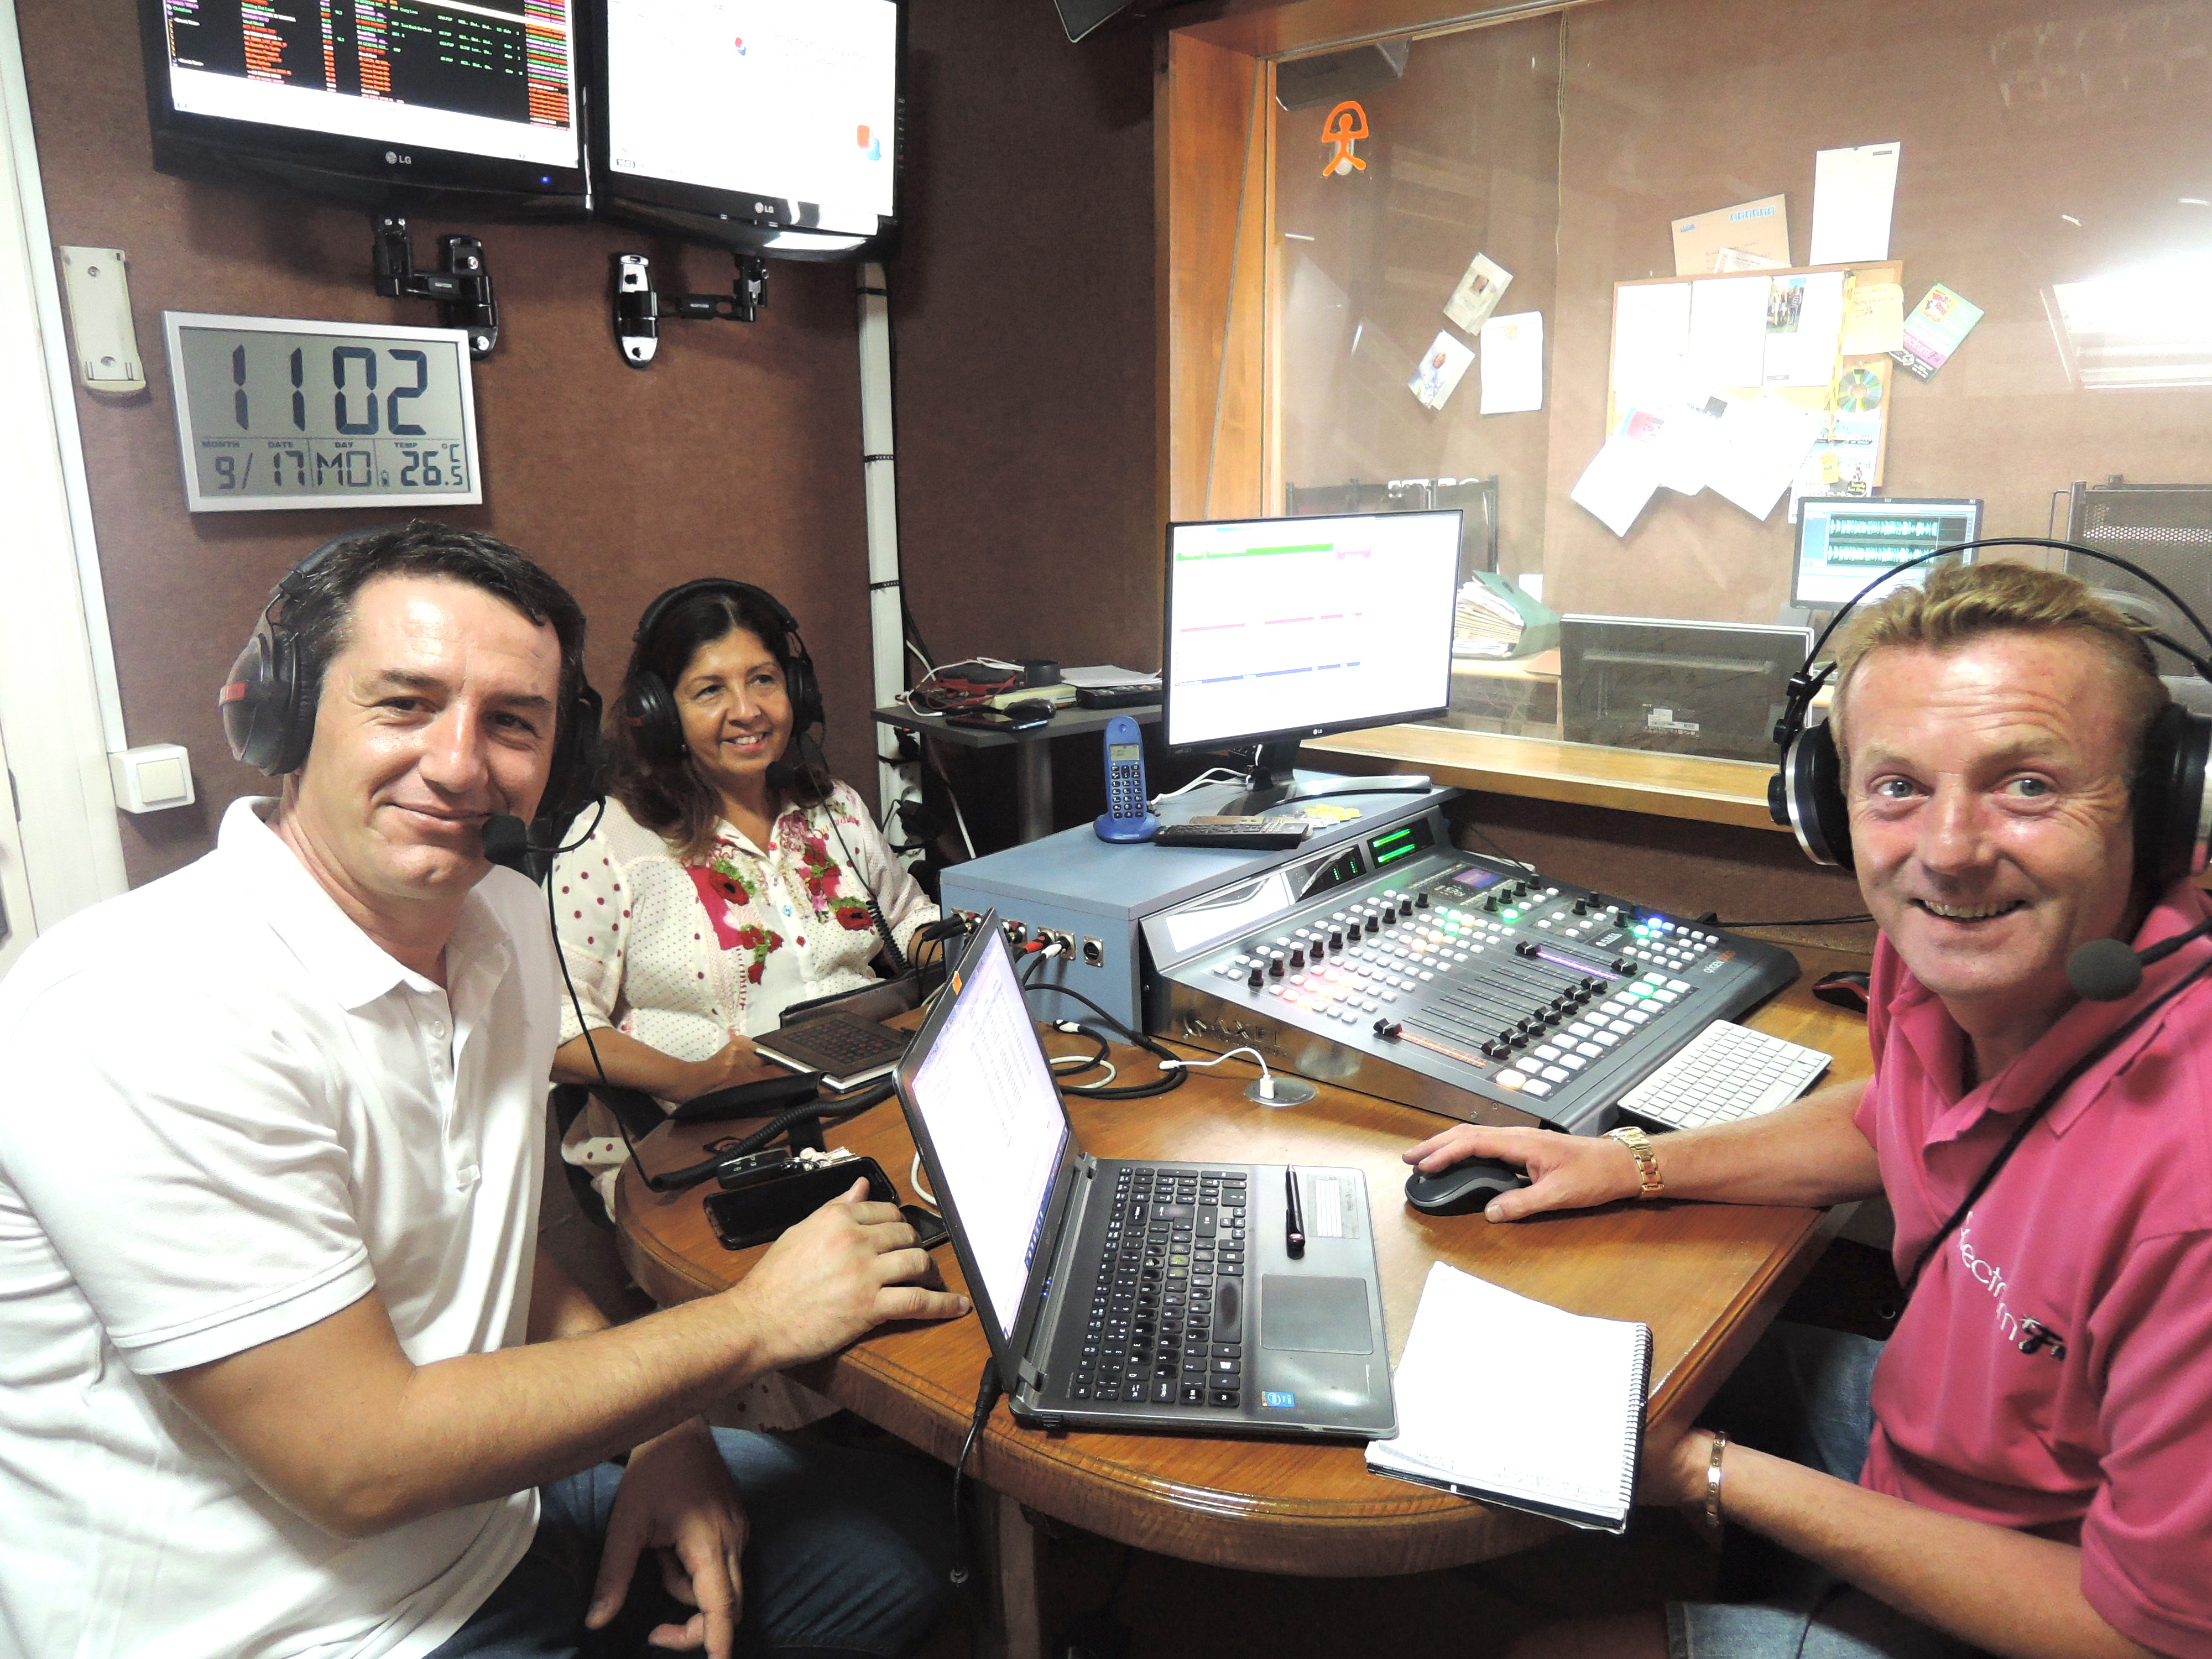 Mojácar Mayor, Rosmari Cano and the Tourism Councillor, Emmanuel Agüero, appeared once again on Spectrum Radio, as part of their ongoing efforts to keep the English speaking residents of the town informed on local matters.